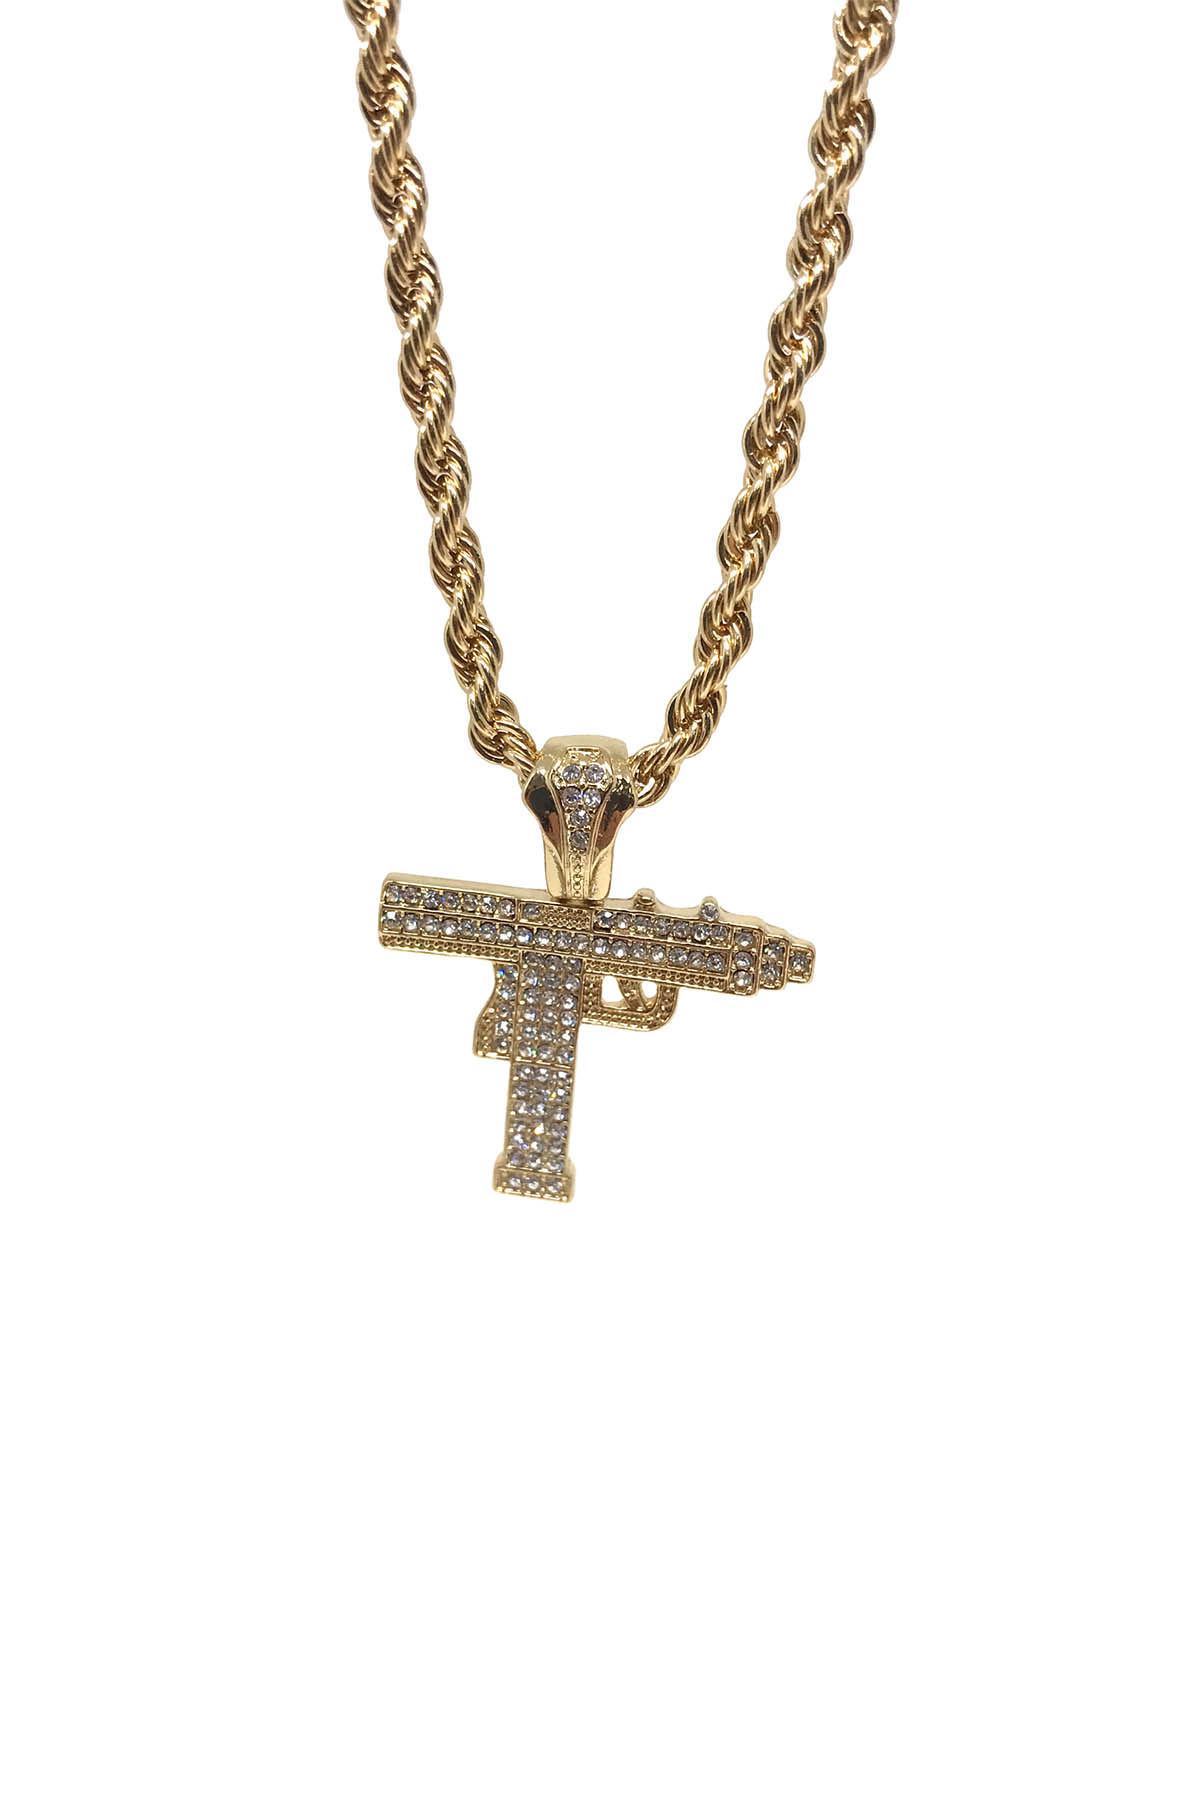 Image of Gold Iced Out Uzi Necklace